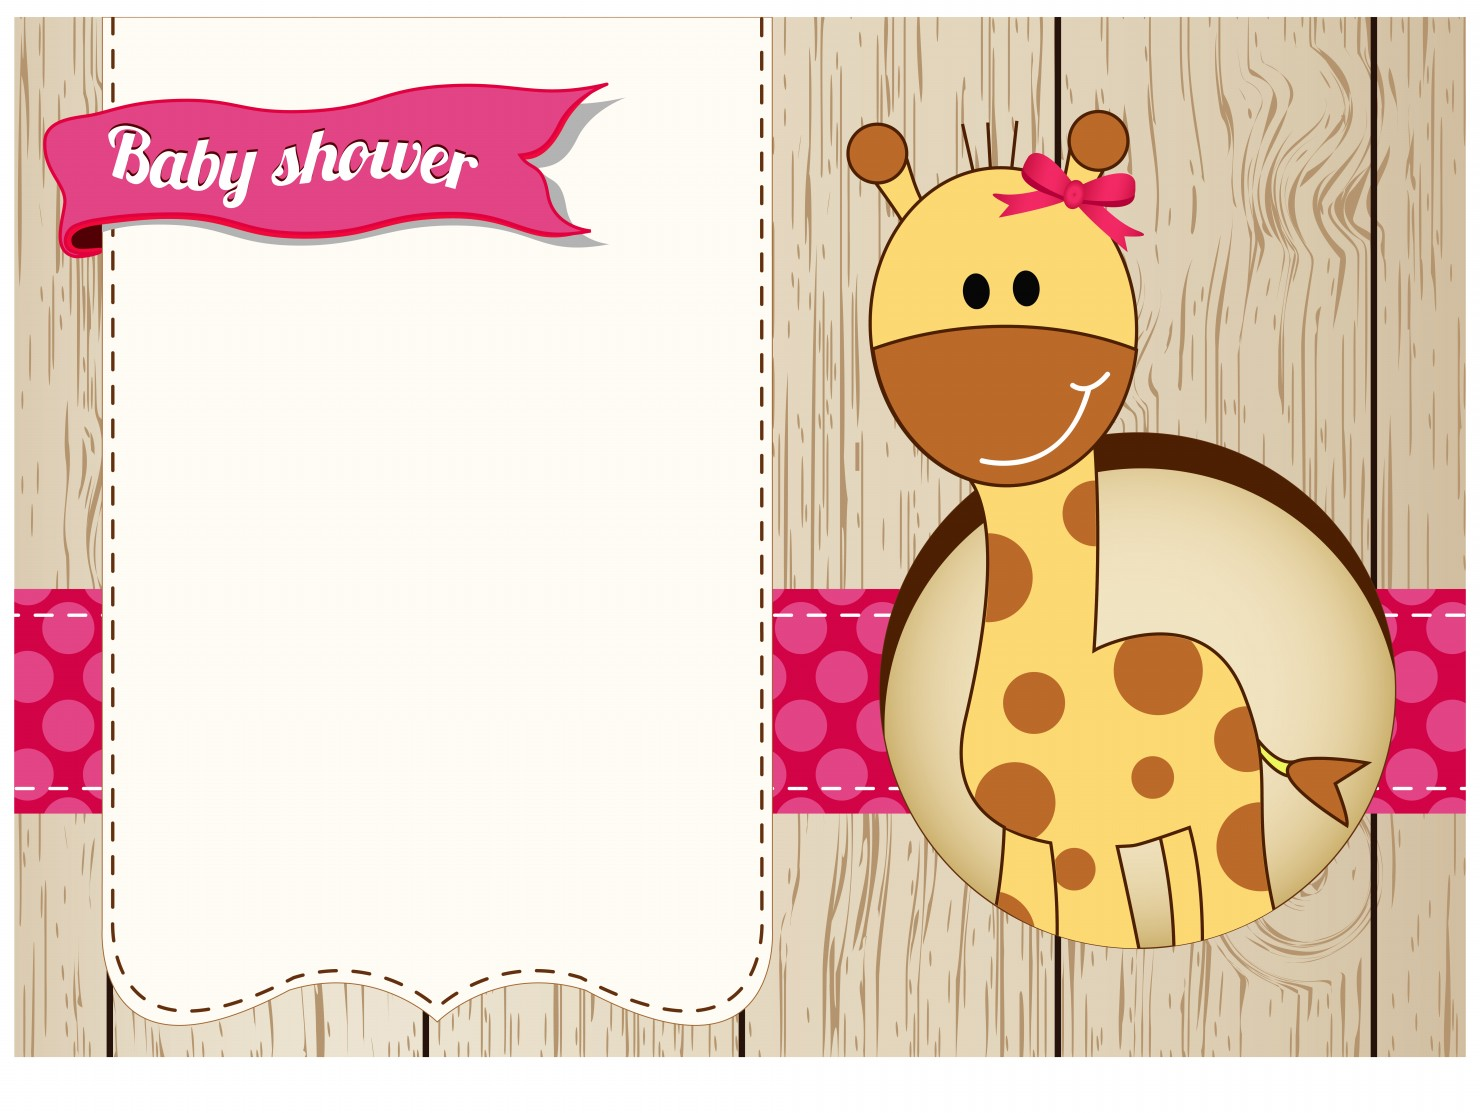 Giraffe Baby Shower Clipart - Clipart Kid